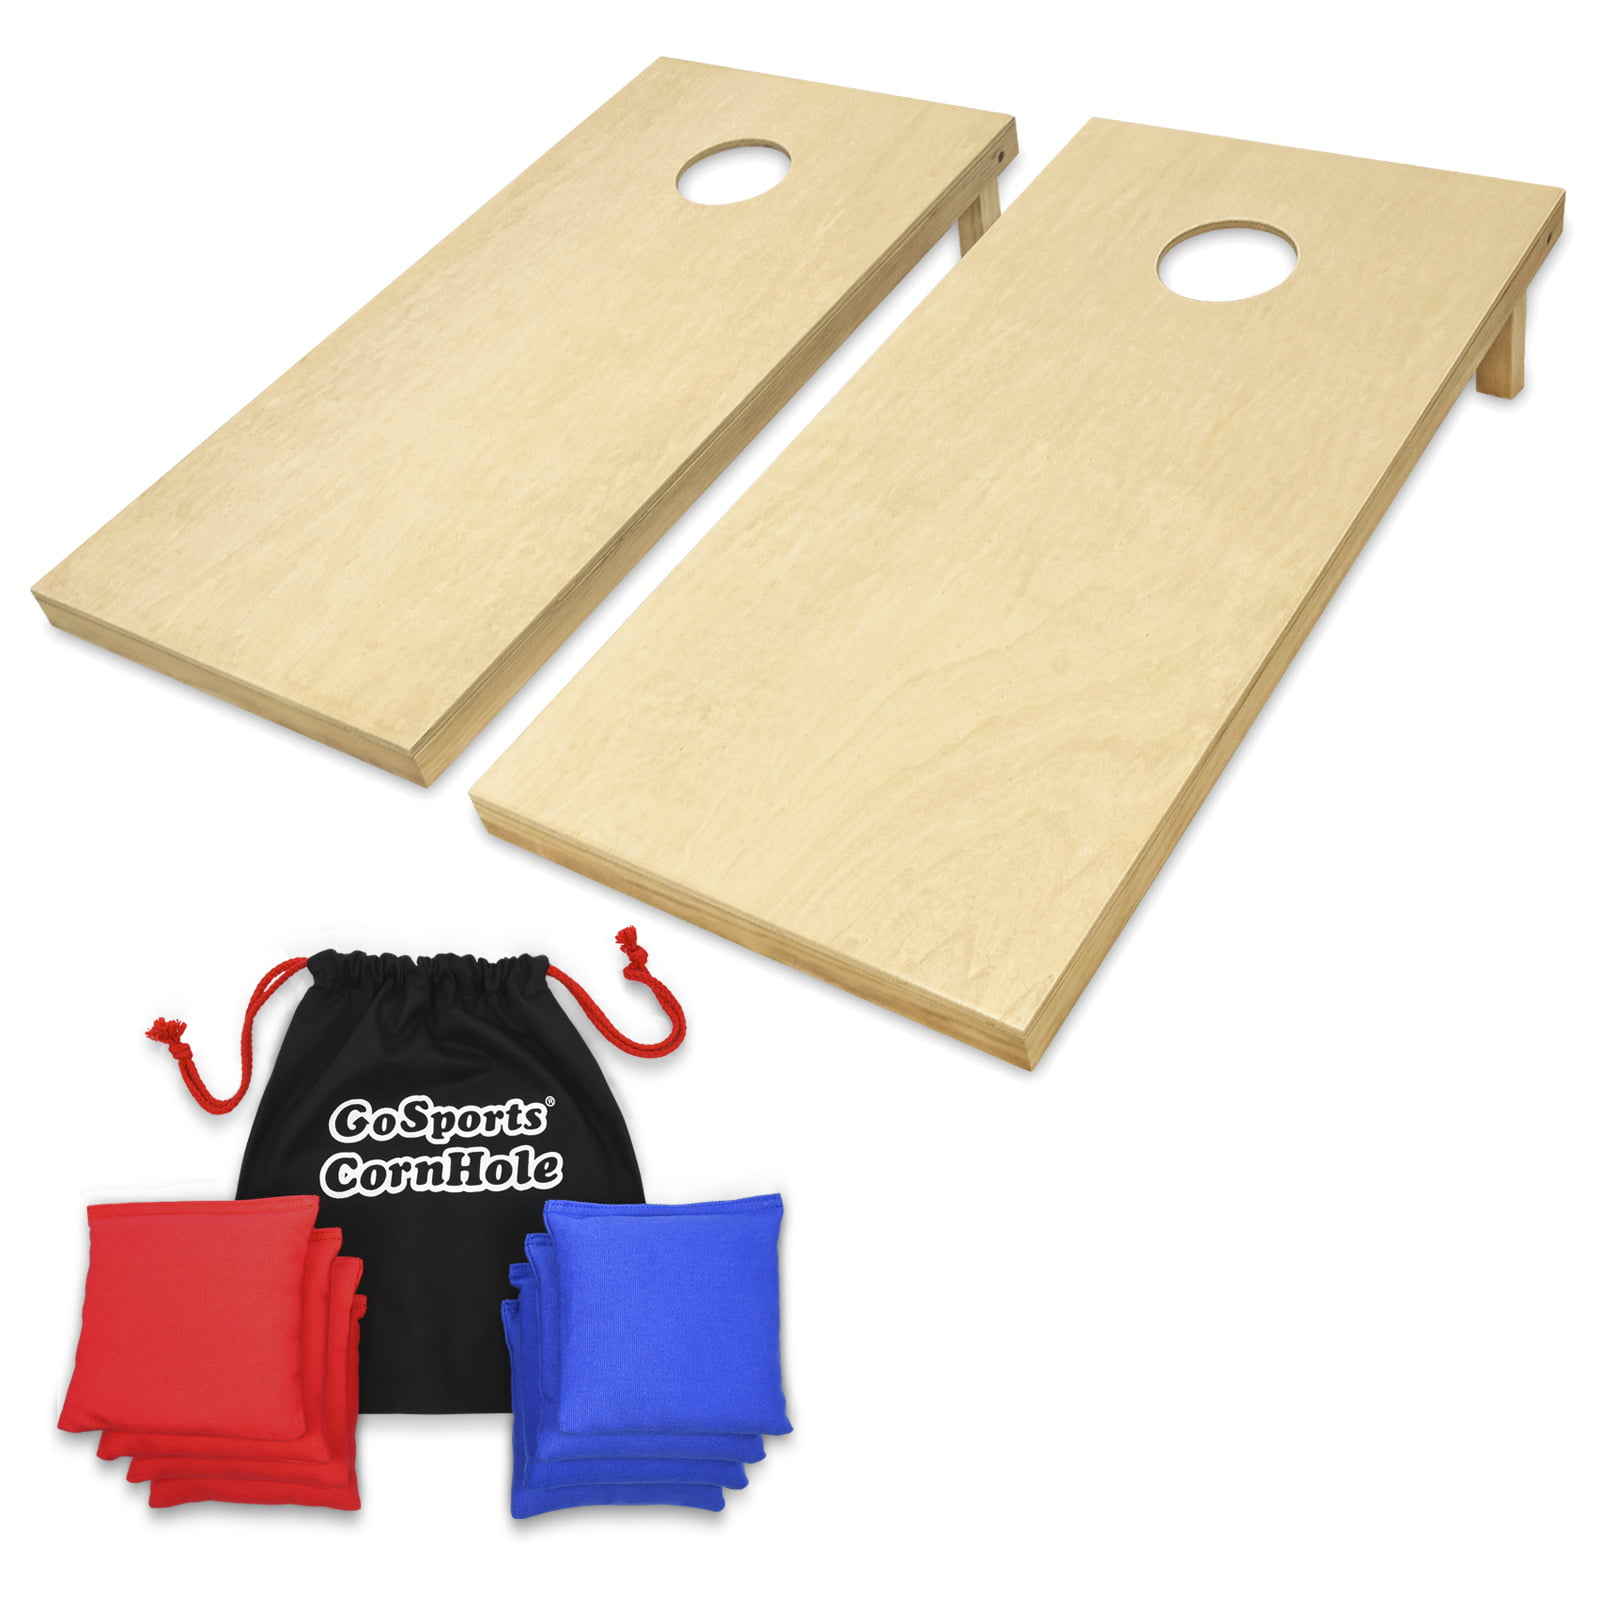 GoSports Regulation Size 4'x2' Wood Cornhole Boards Outdoor Tailgate Game Kit, with 8... by P&P Imports LLC